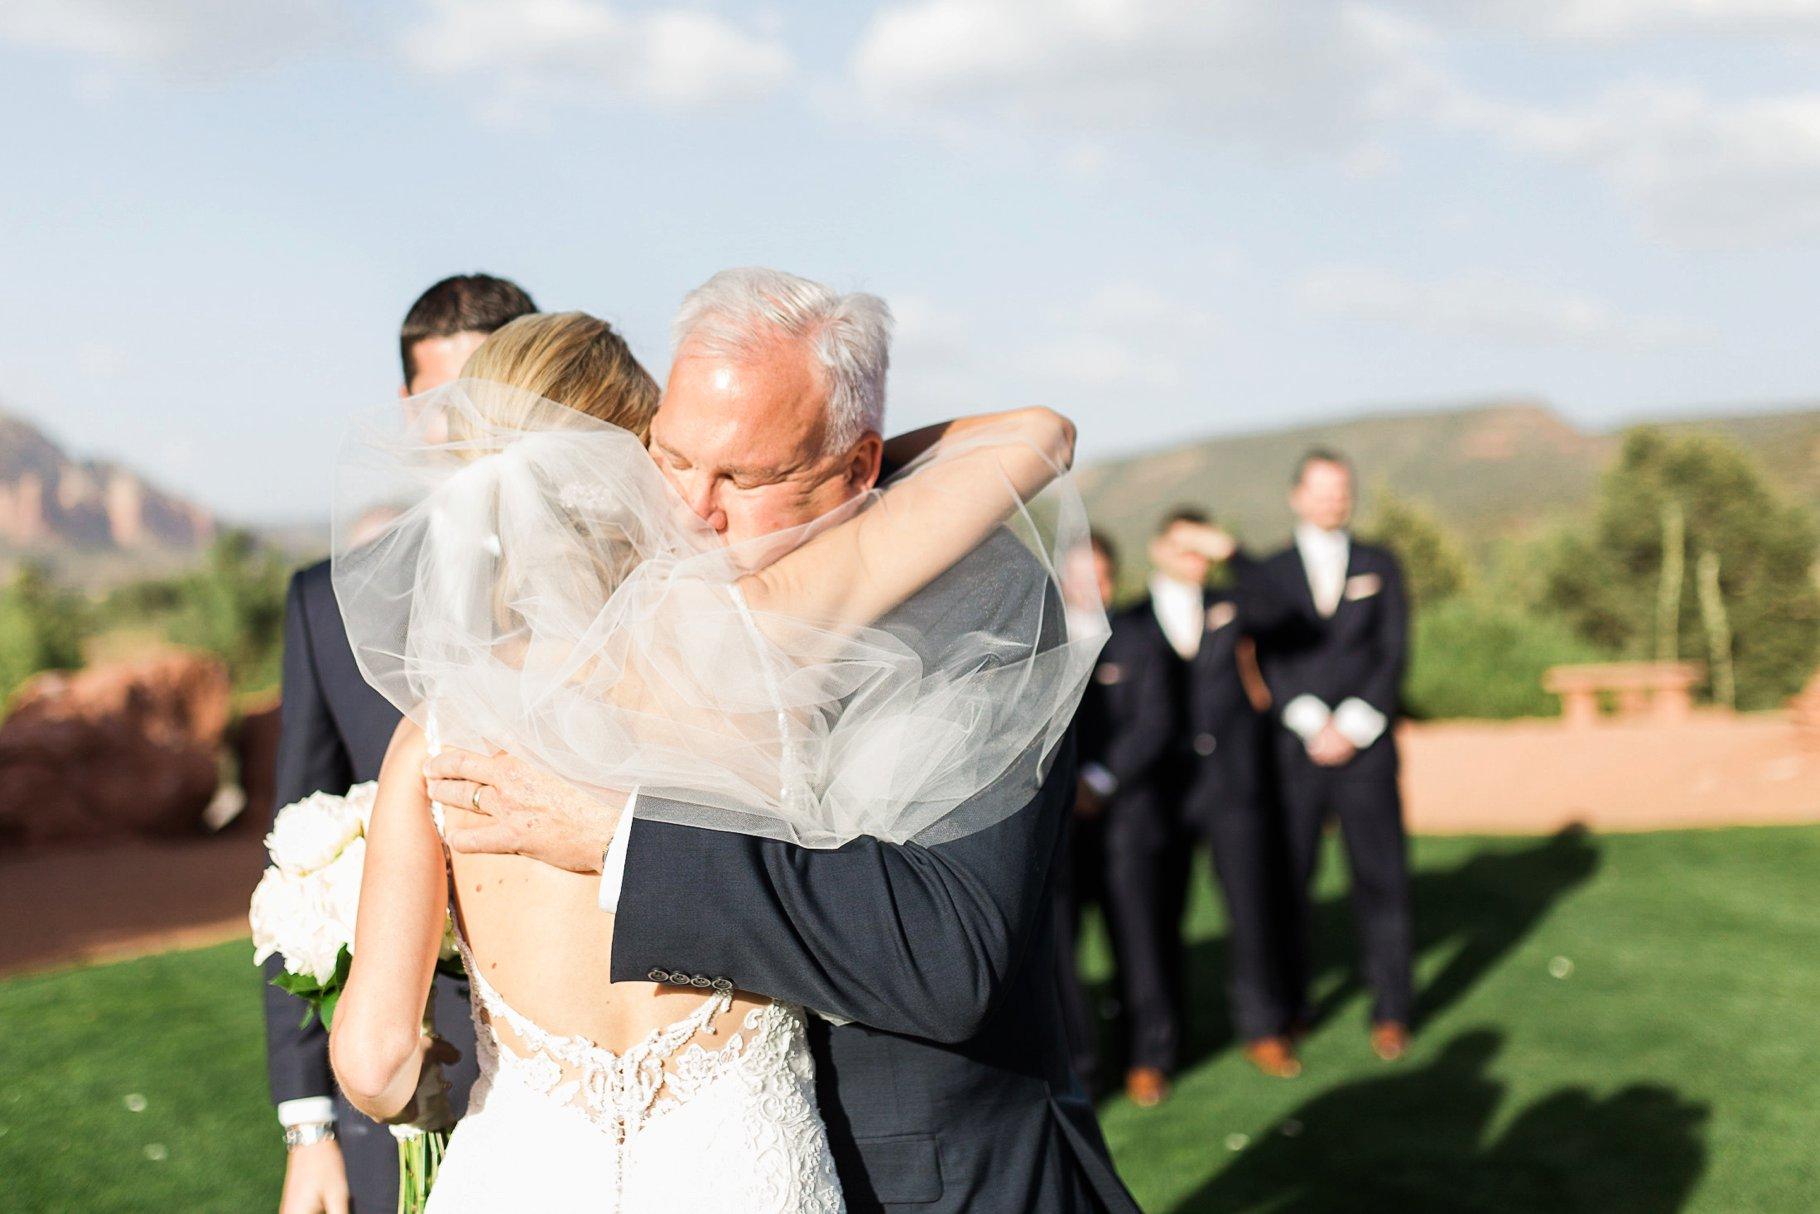 sedona wedding-70_GRETCHEN WAKEMAN PHOTOGRAPHY.jpg